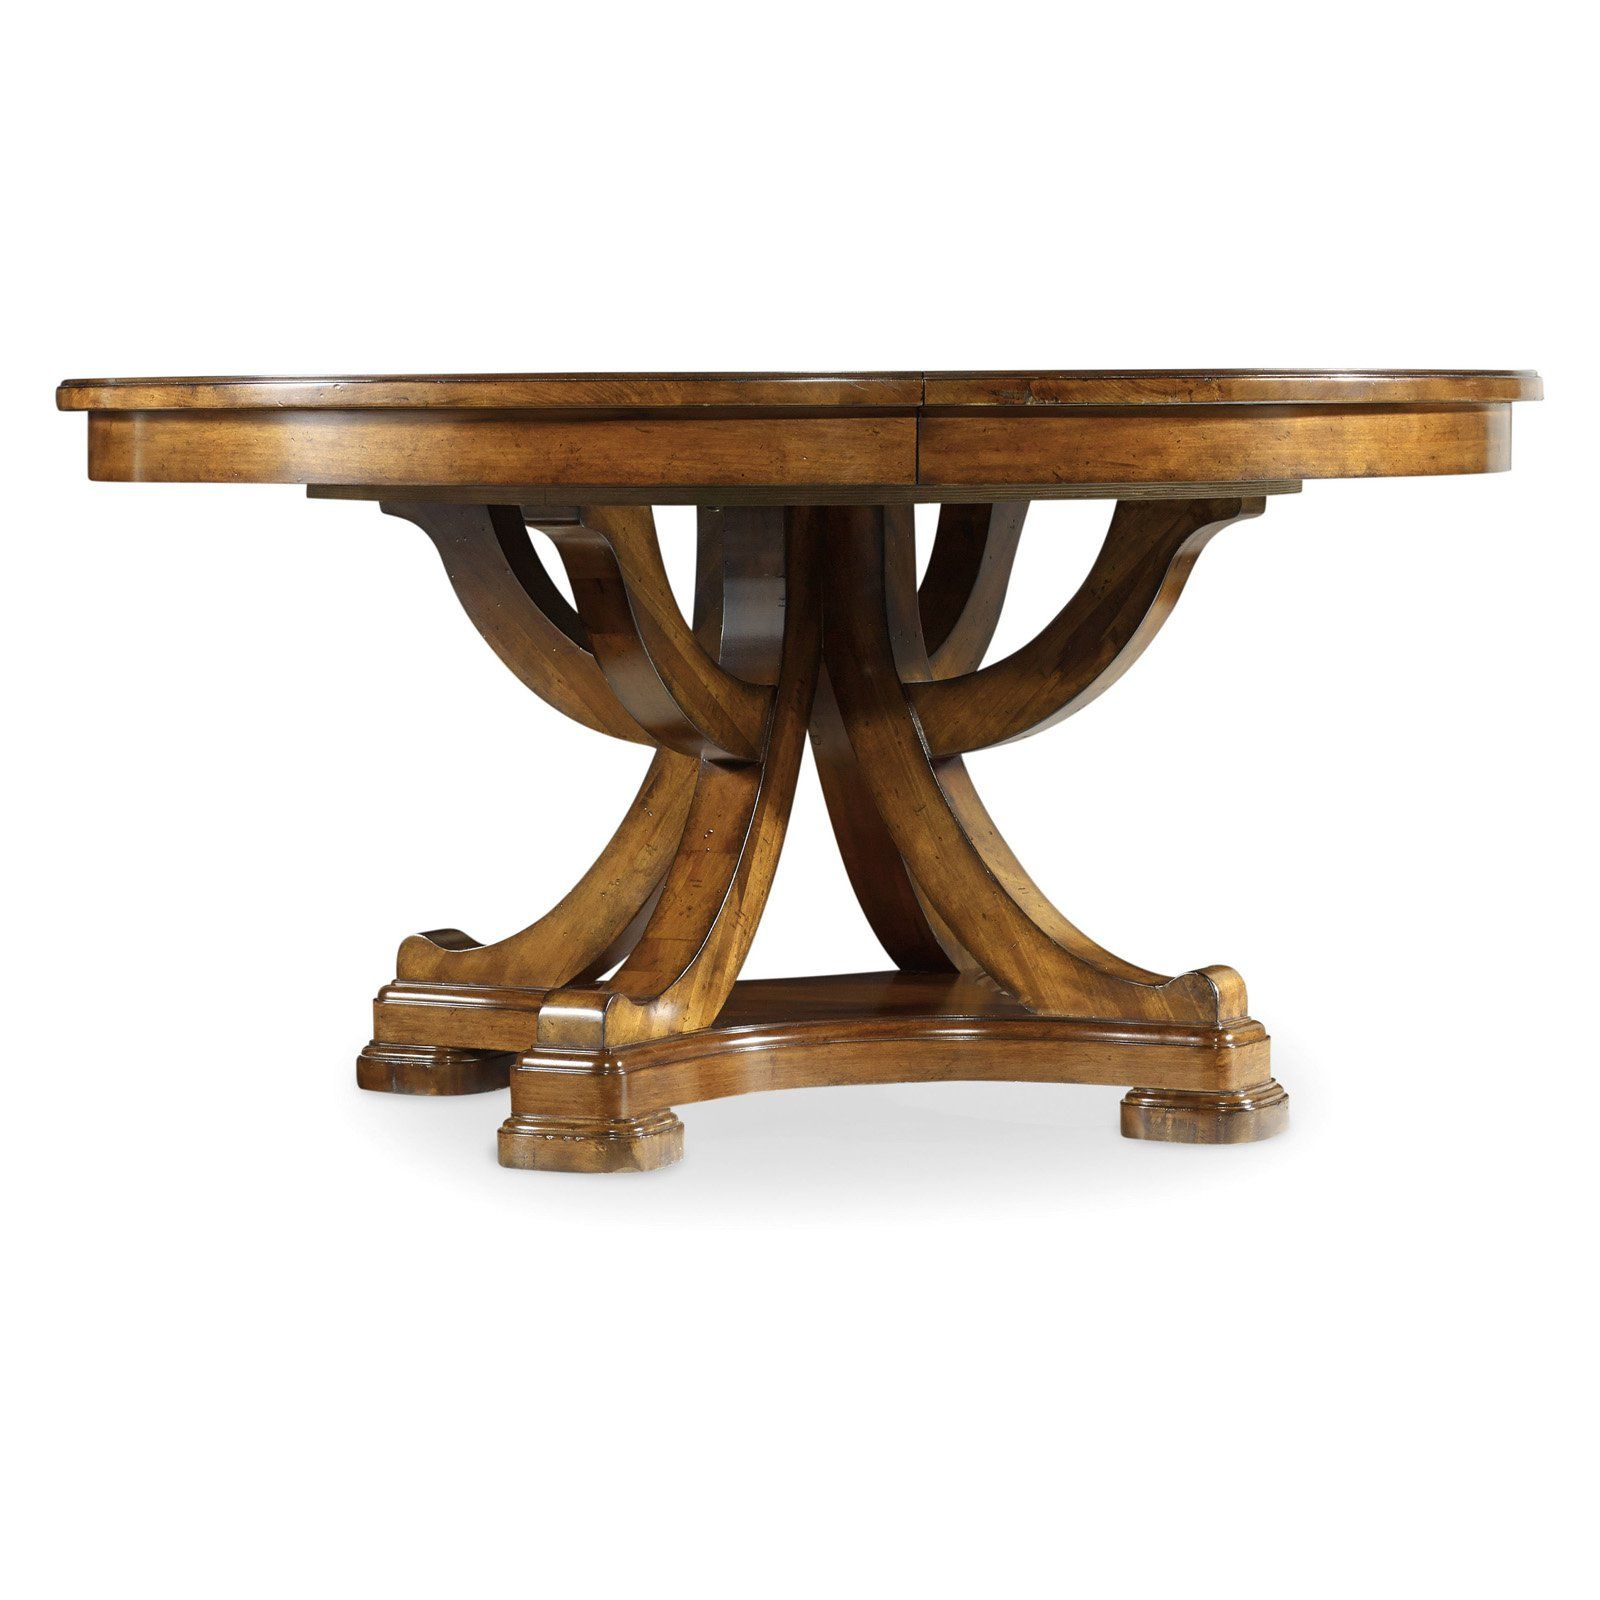 Hooker Furniture Tynecastle Round Pedestal Extension Dining Throughout Most Recently Released Rustic Mahogany Benchwright Pedestal Extending Dining Tables (View 12 of 25)